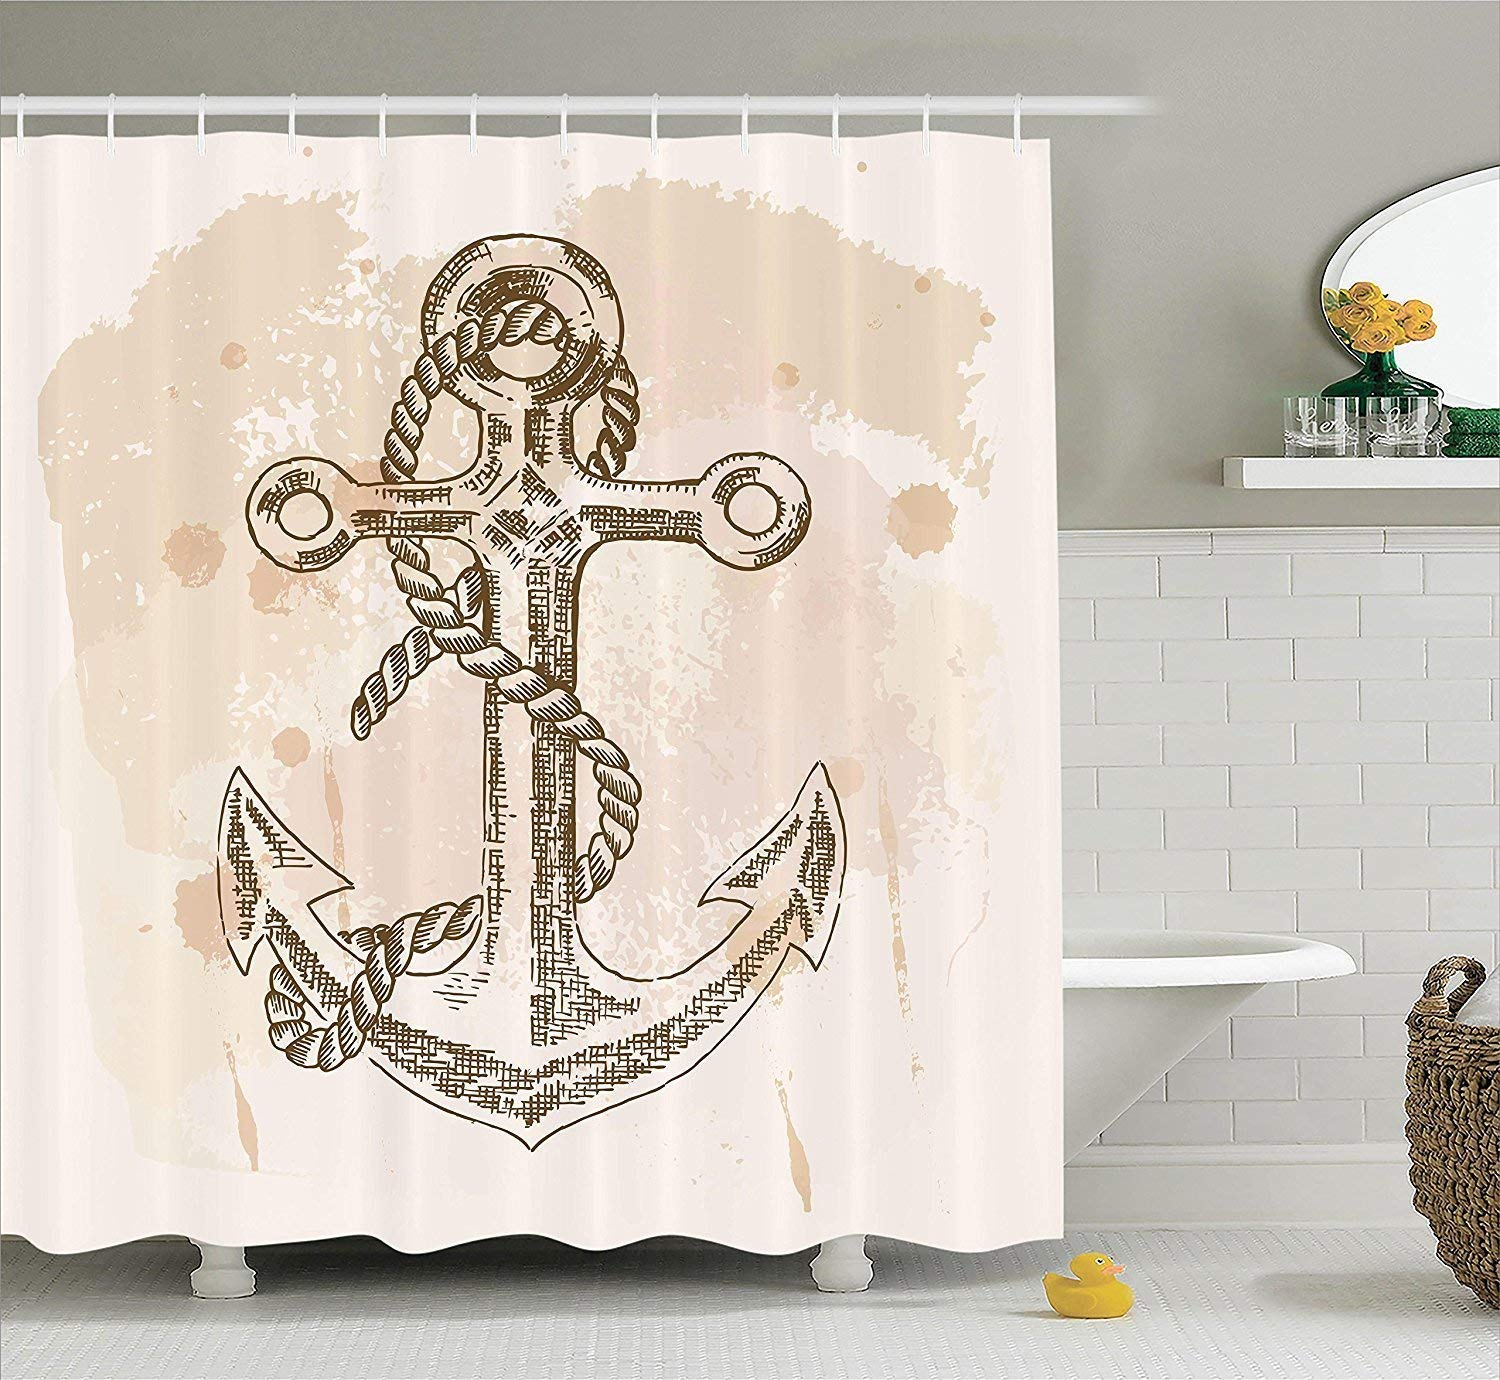 Diversión Shower sexy werert Anchor Decor Shower Diversión Curtain Set, Illustration of Anchor and Rope on Stained Background Navy Summer Holiday Freedom Print, Bathroom Accessories,Cream Marrón 60 X 72 cef8f9